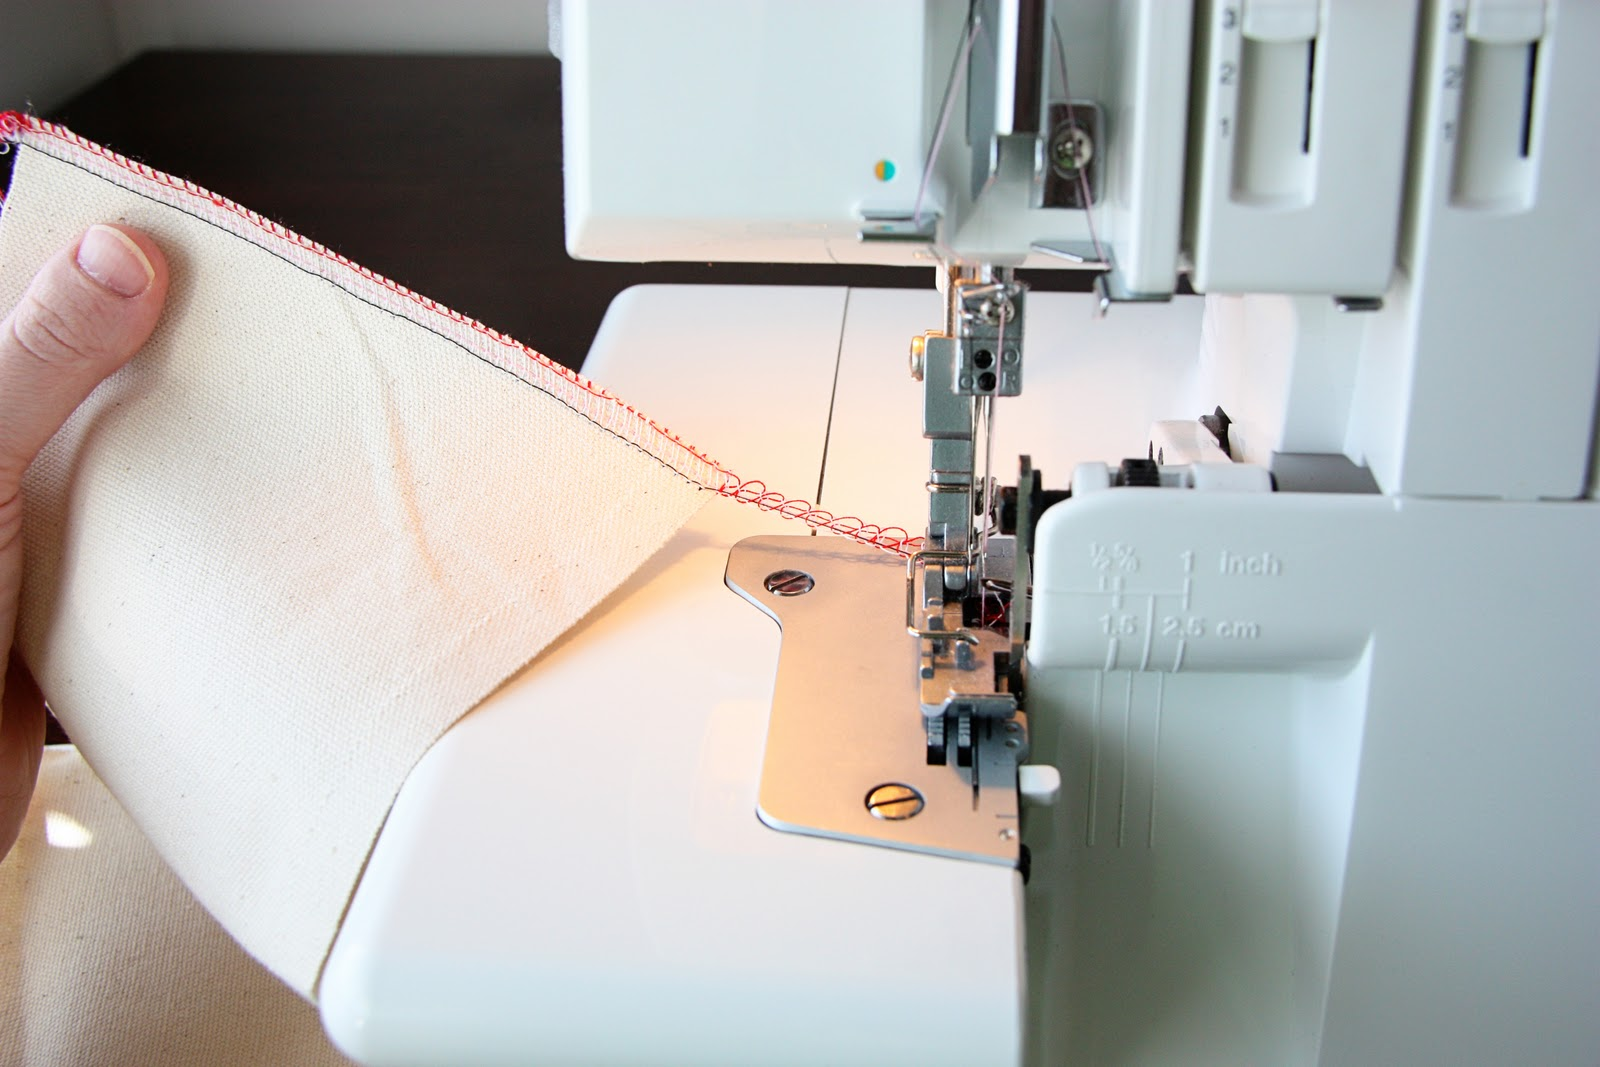 Using A Serger Make It And Love Free Kenmore Sewing Machine Treading Diagrams Thread To Continue Then Cut Off You Always Want Leave Trail Of Serged Attached The So That Threads Stay In Place